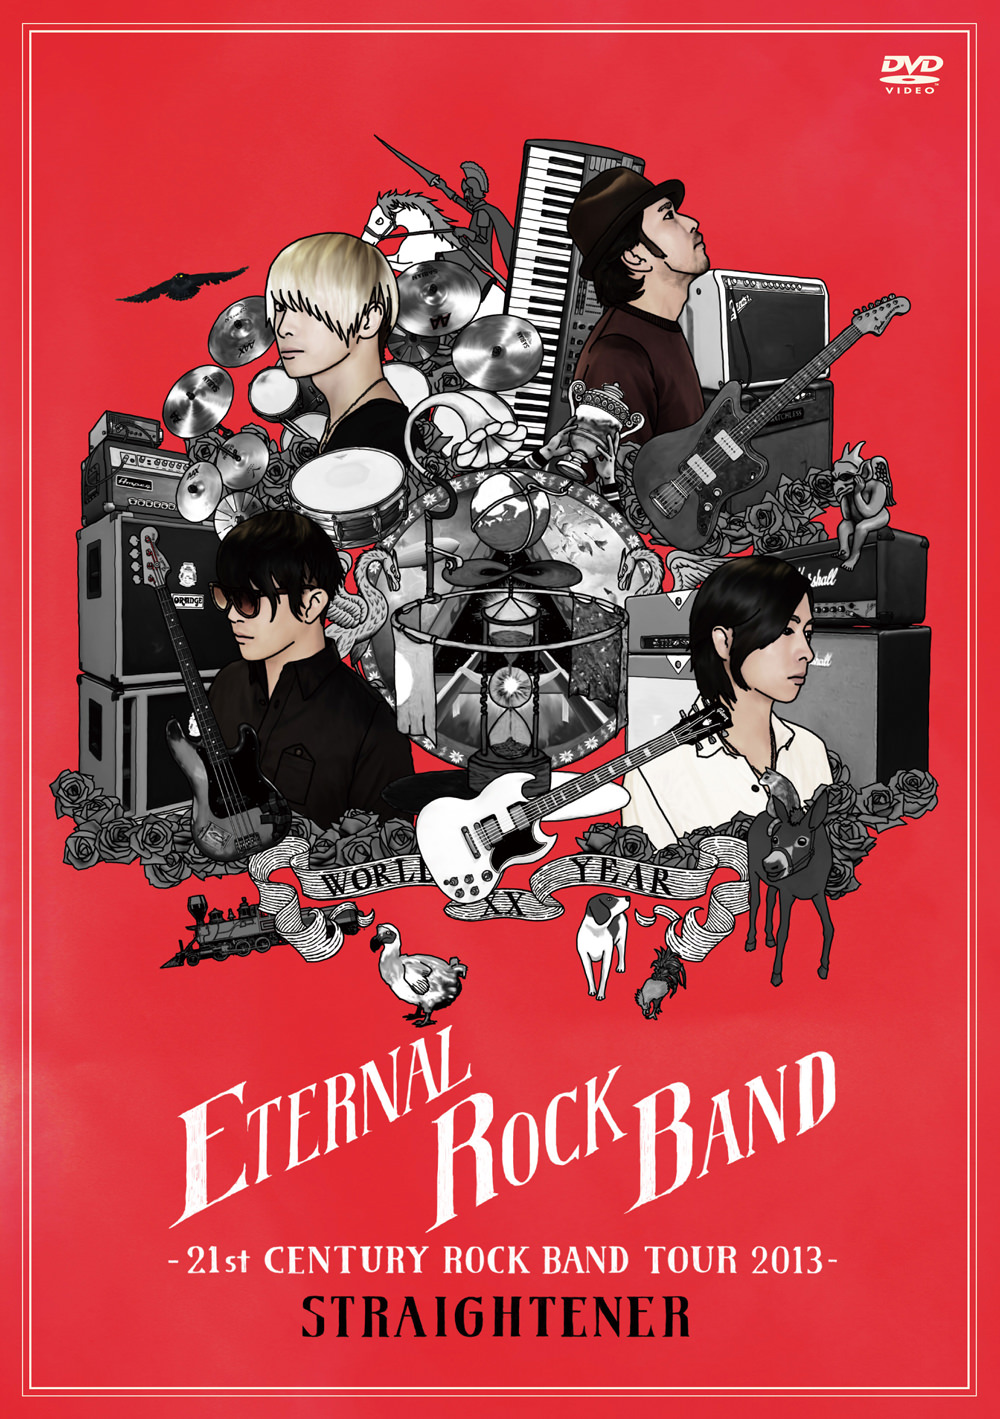 ETERNAL ROCK BAND -21st CENTURY ROCK BAND TOUR 2013-